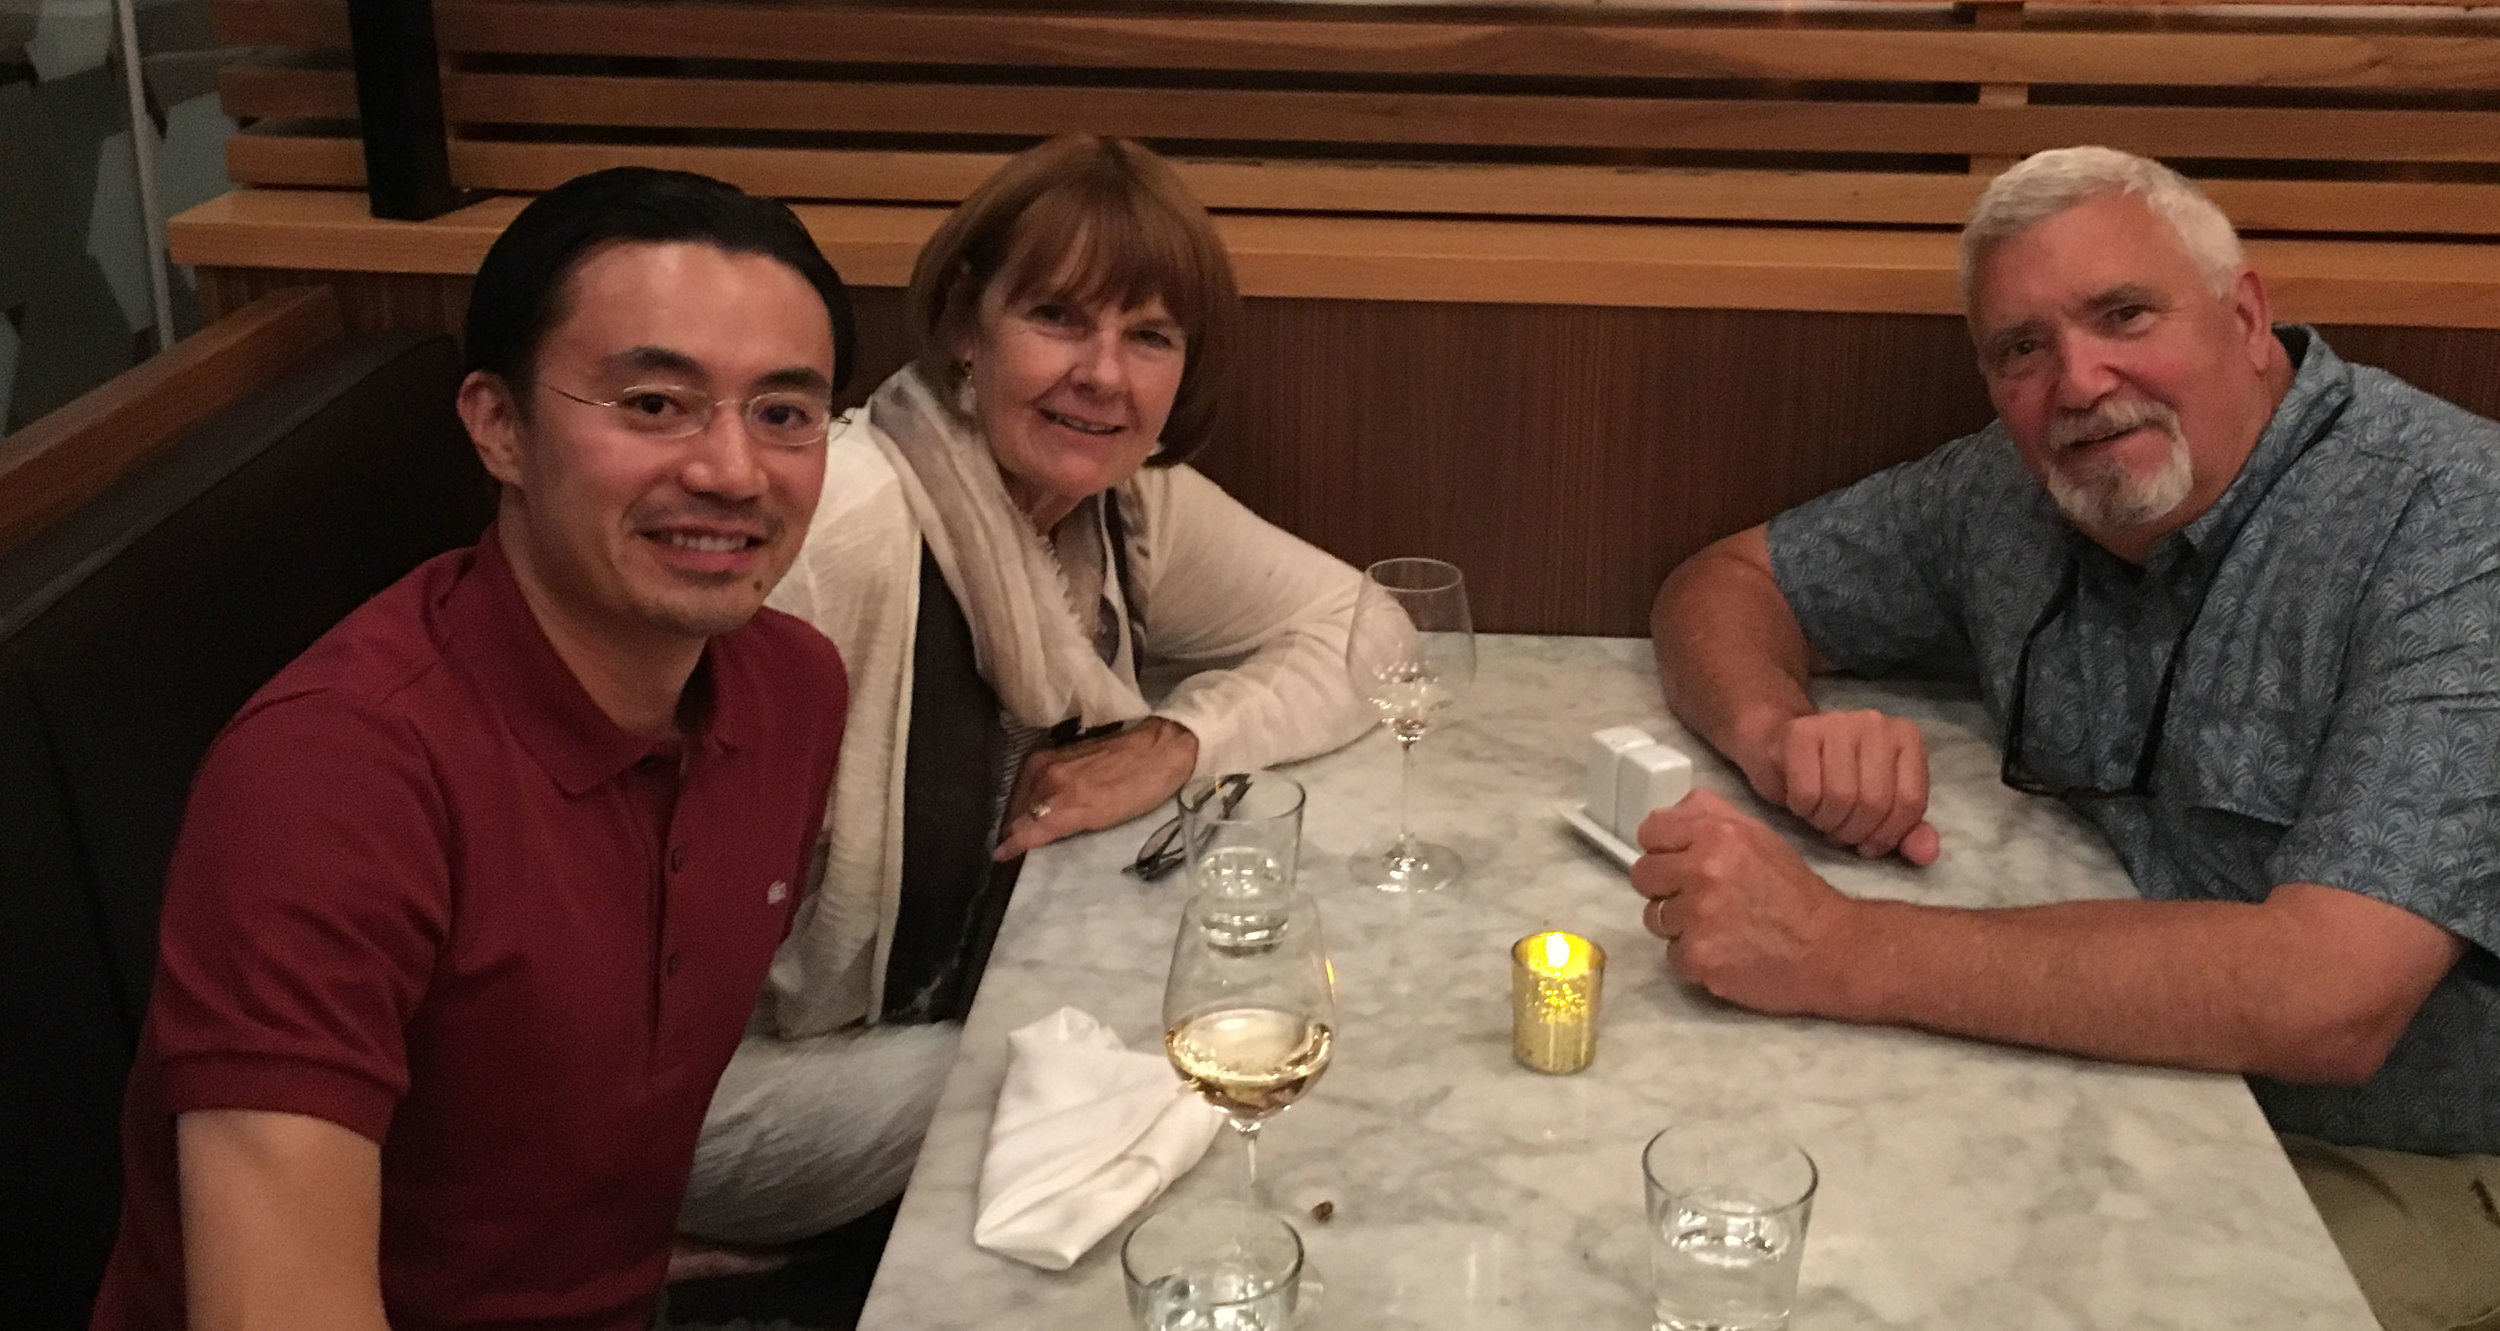 Koji, Carol and I at the Proof restaurant in Waterloo